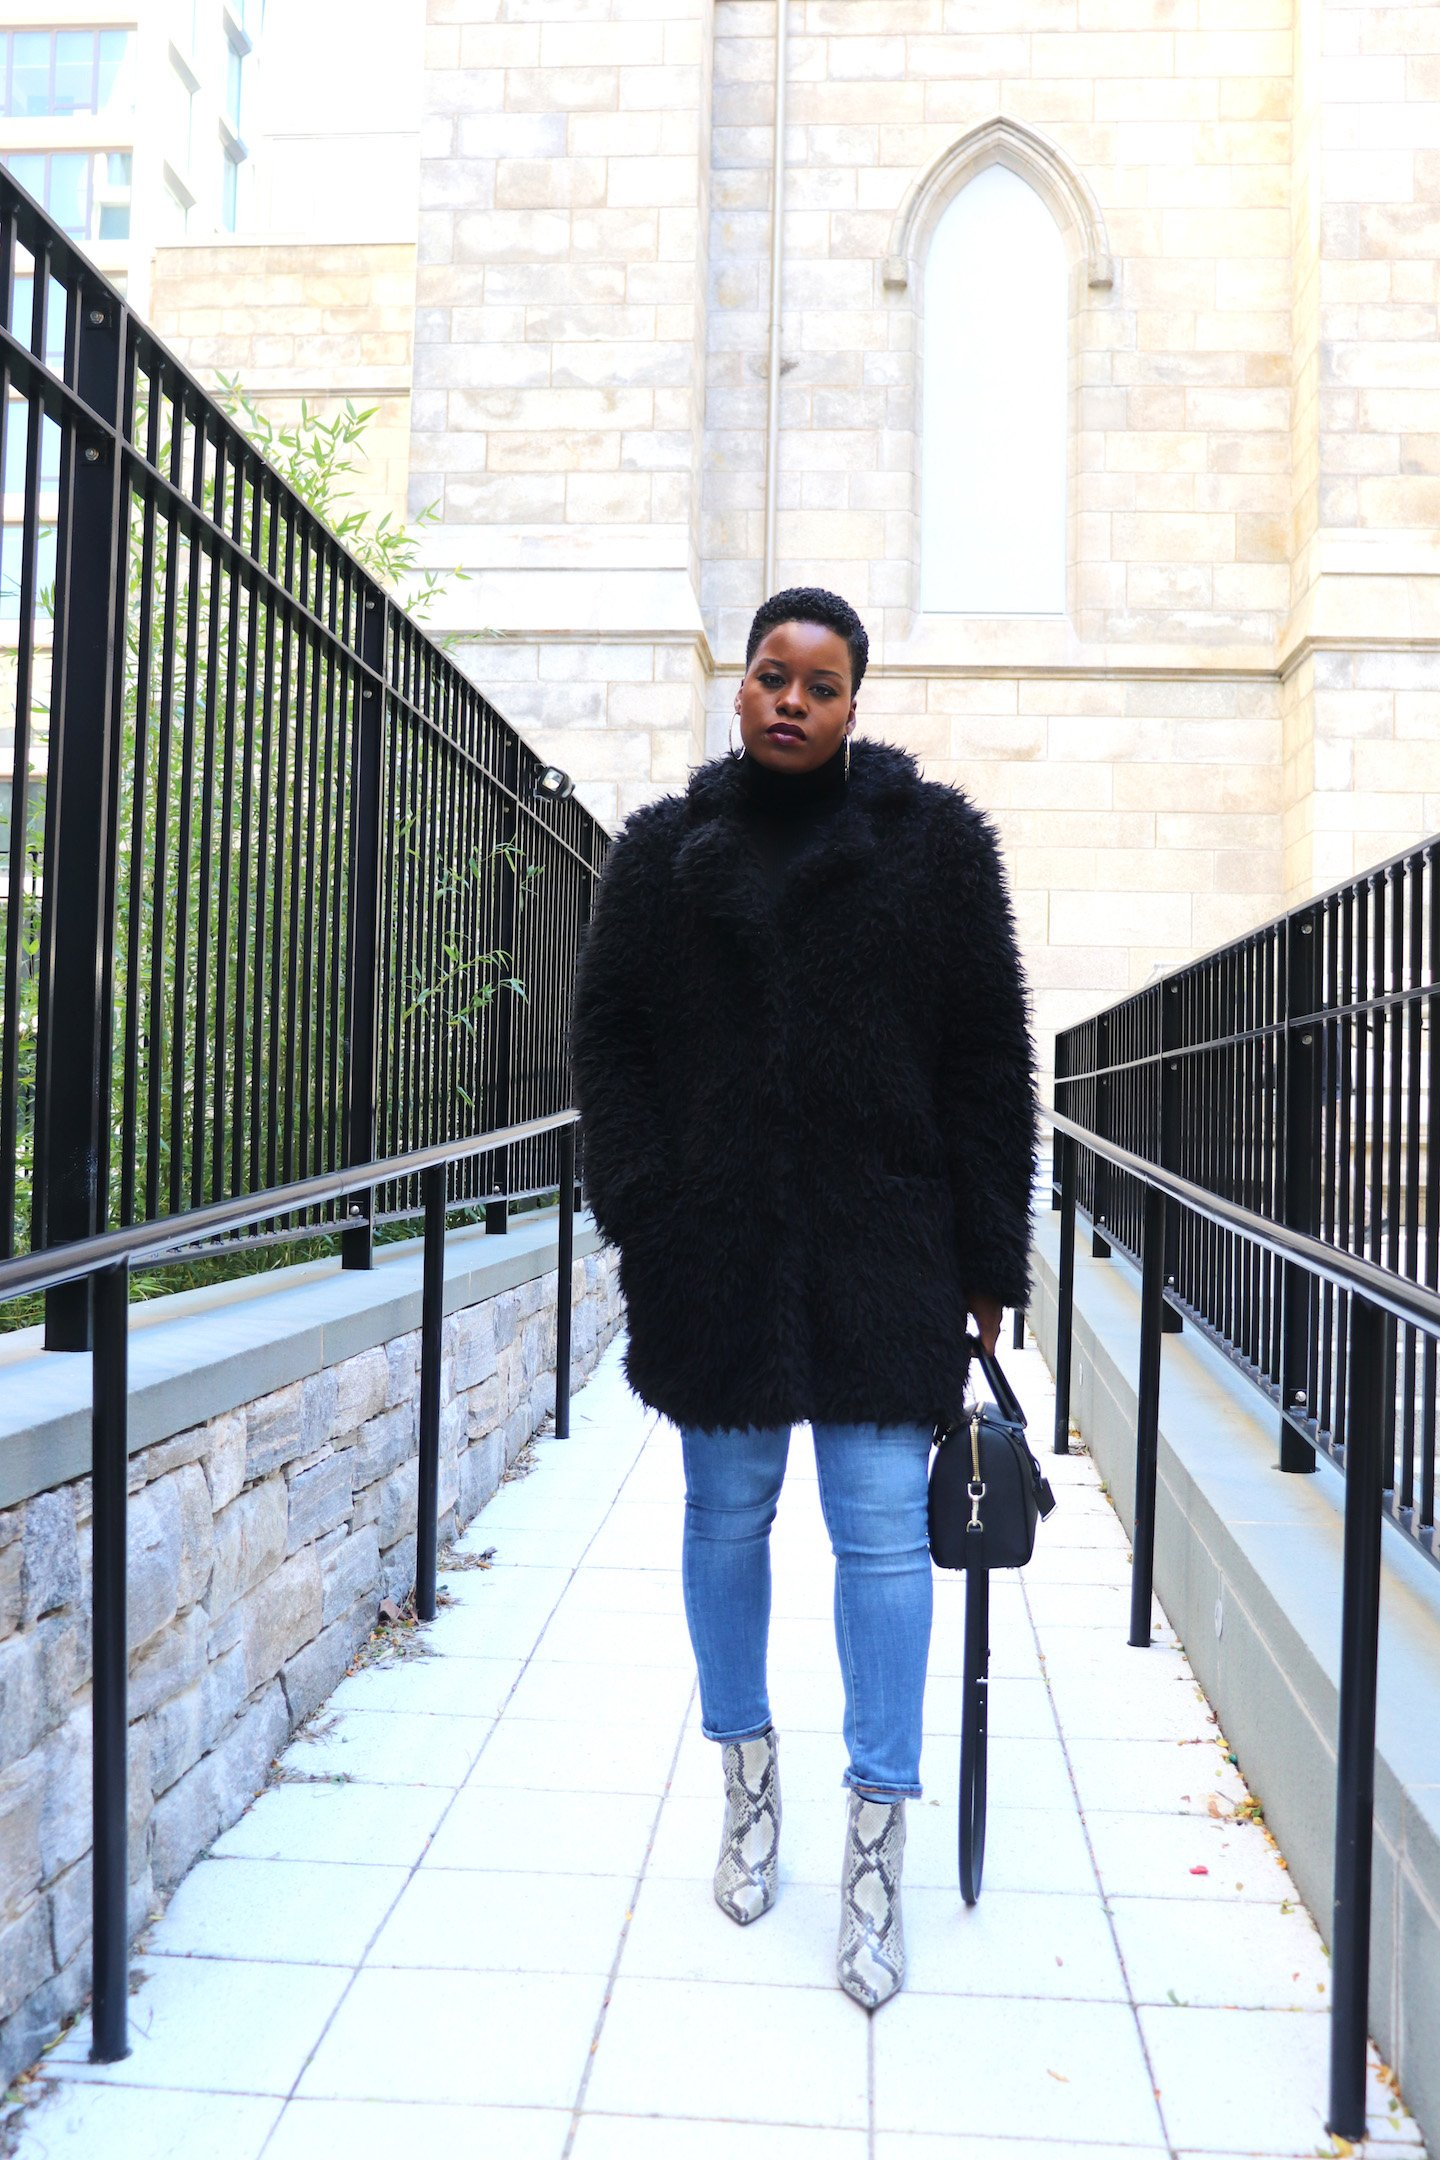 Snakeskin Ankle Boots with Teddy Bear Coat Outfit